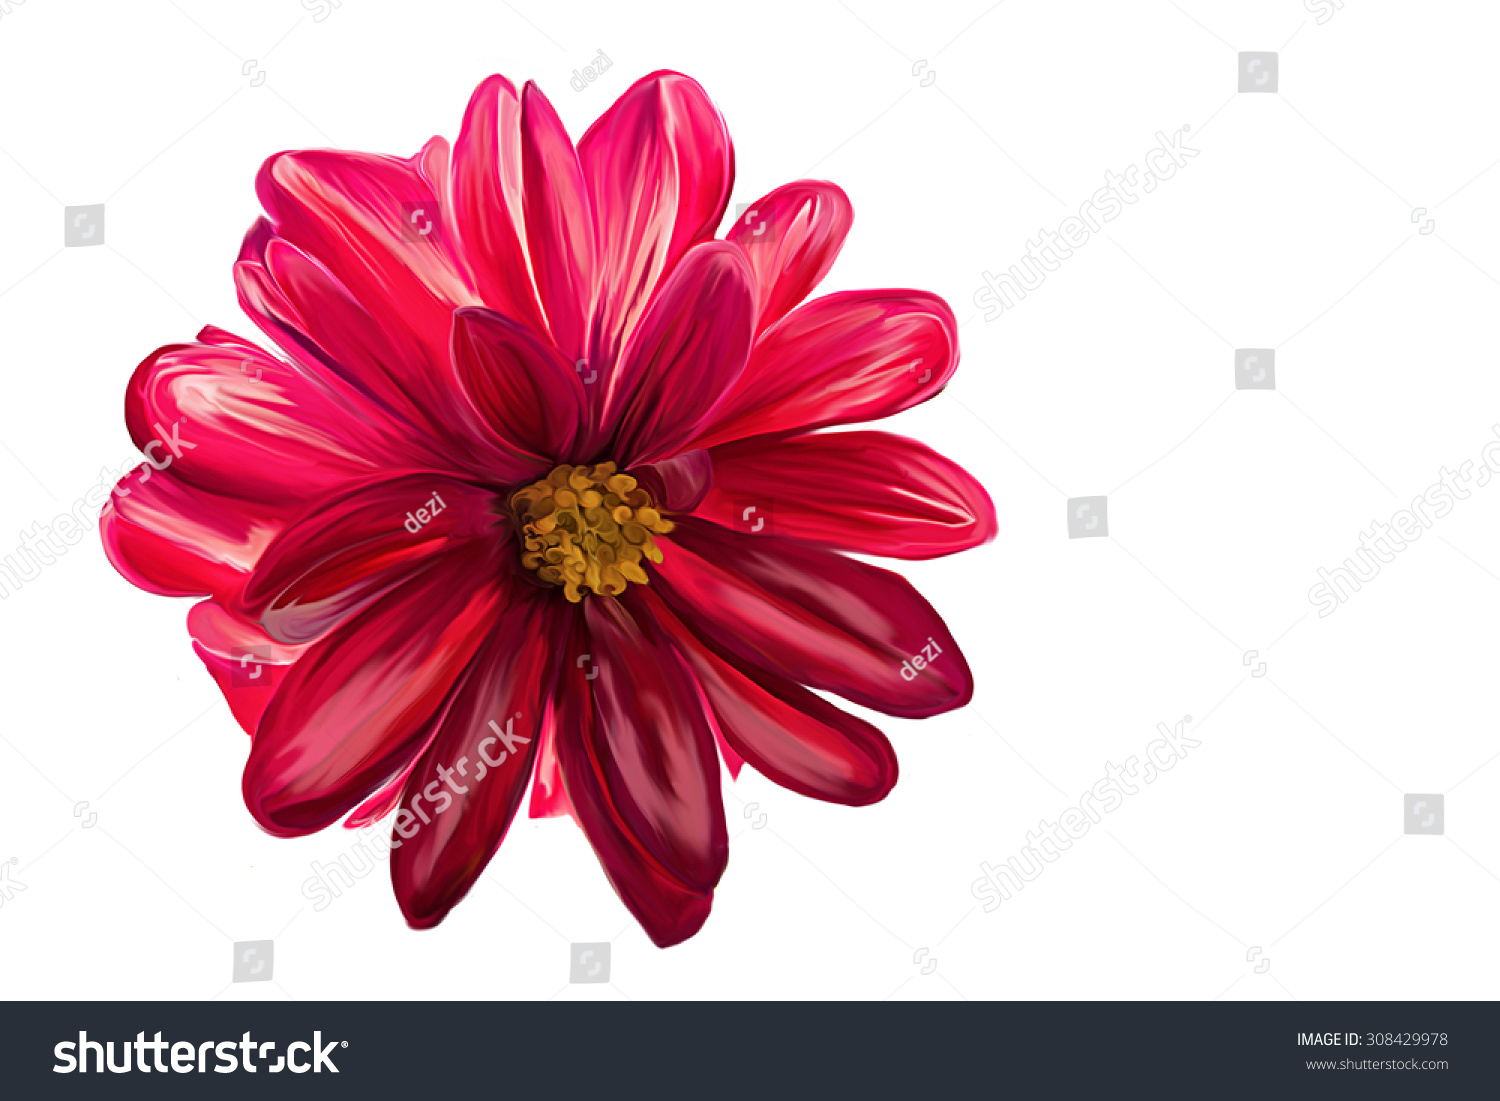 Drawing Oil Painting Red Dahlia Flower Stock Illustration 308429978